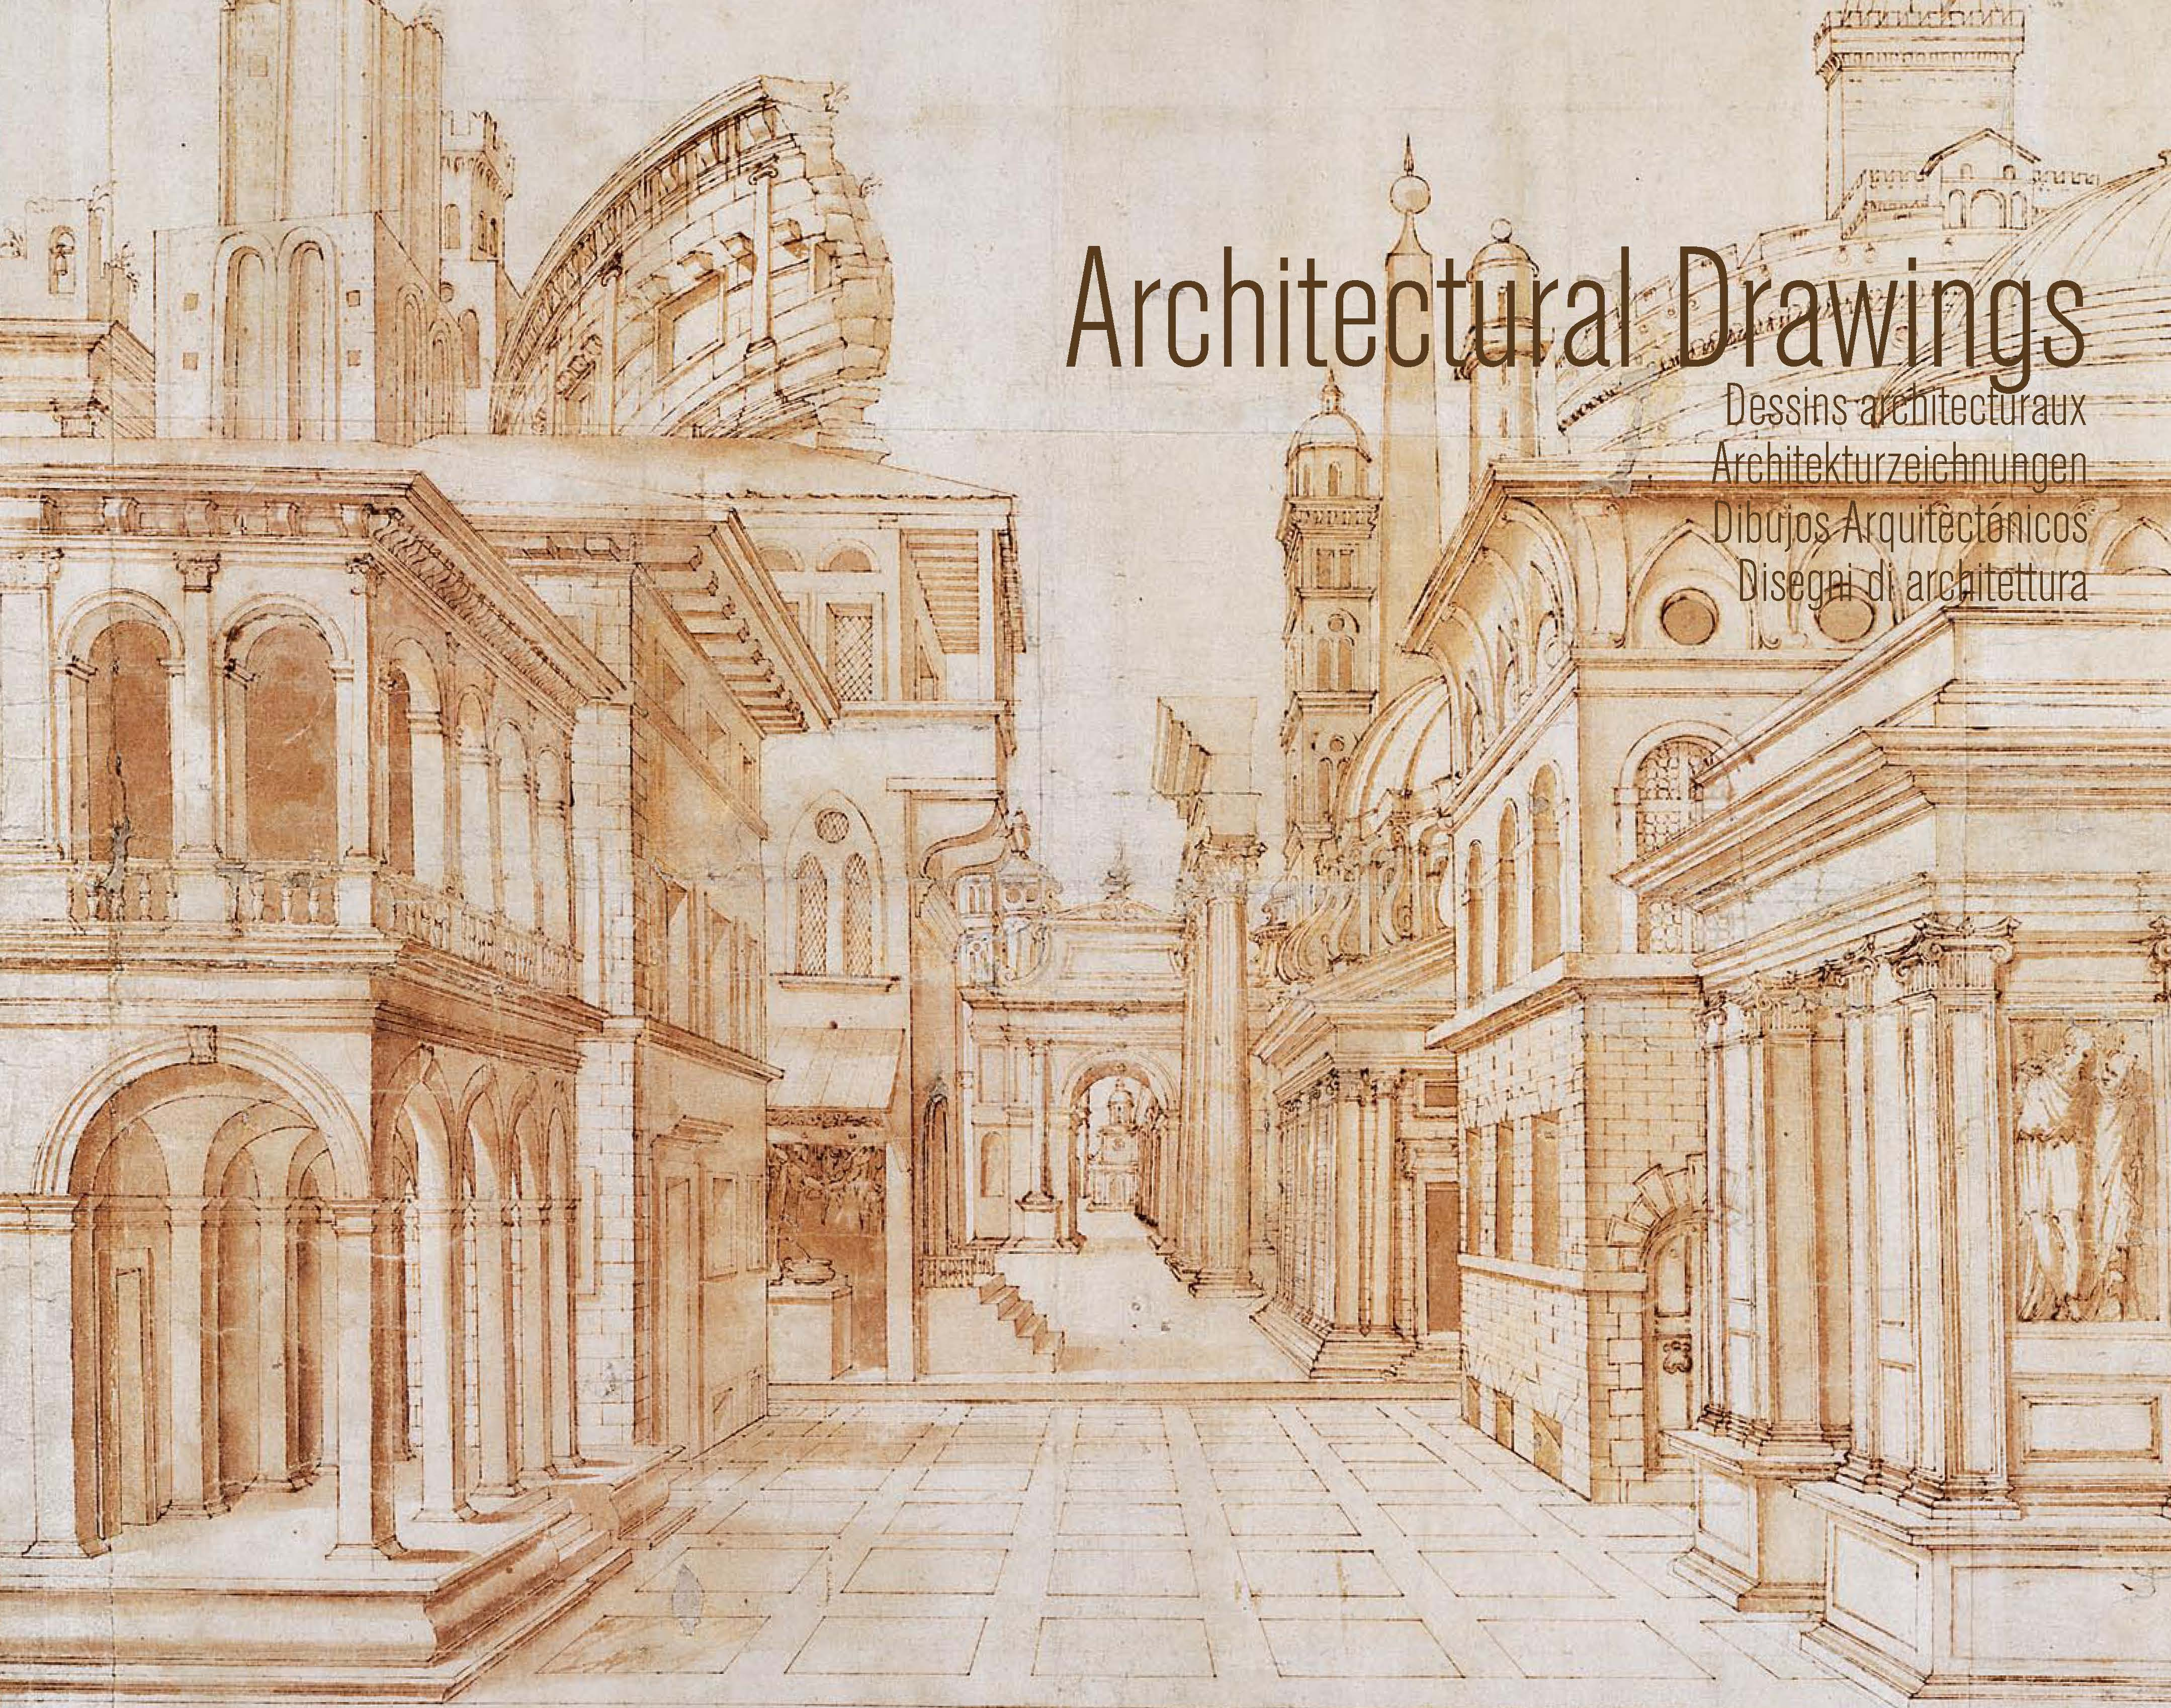 PP Architectual Drawings